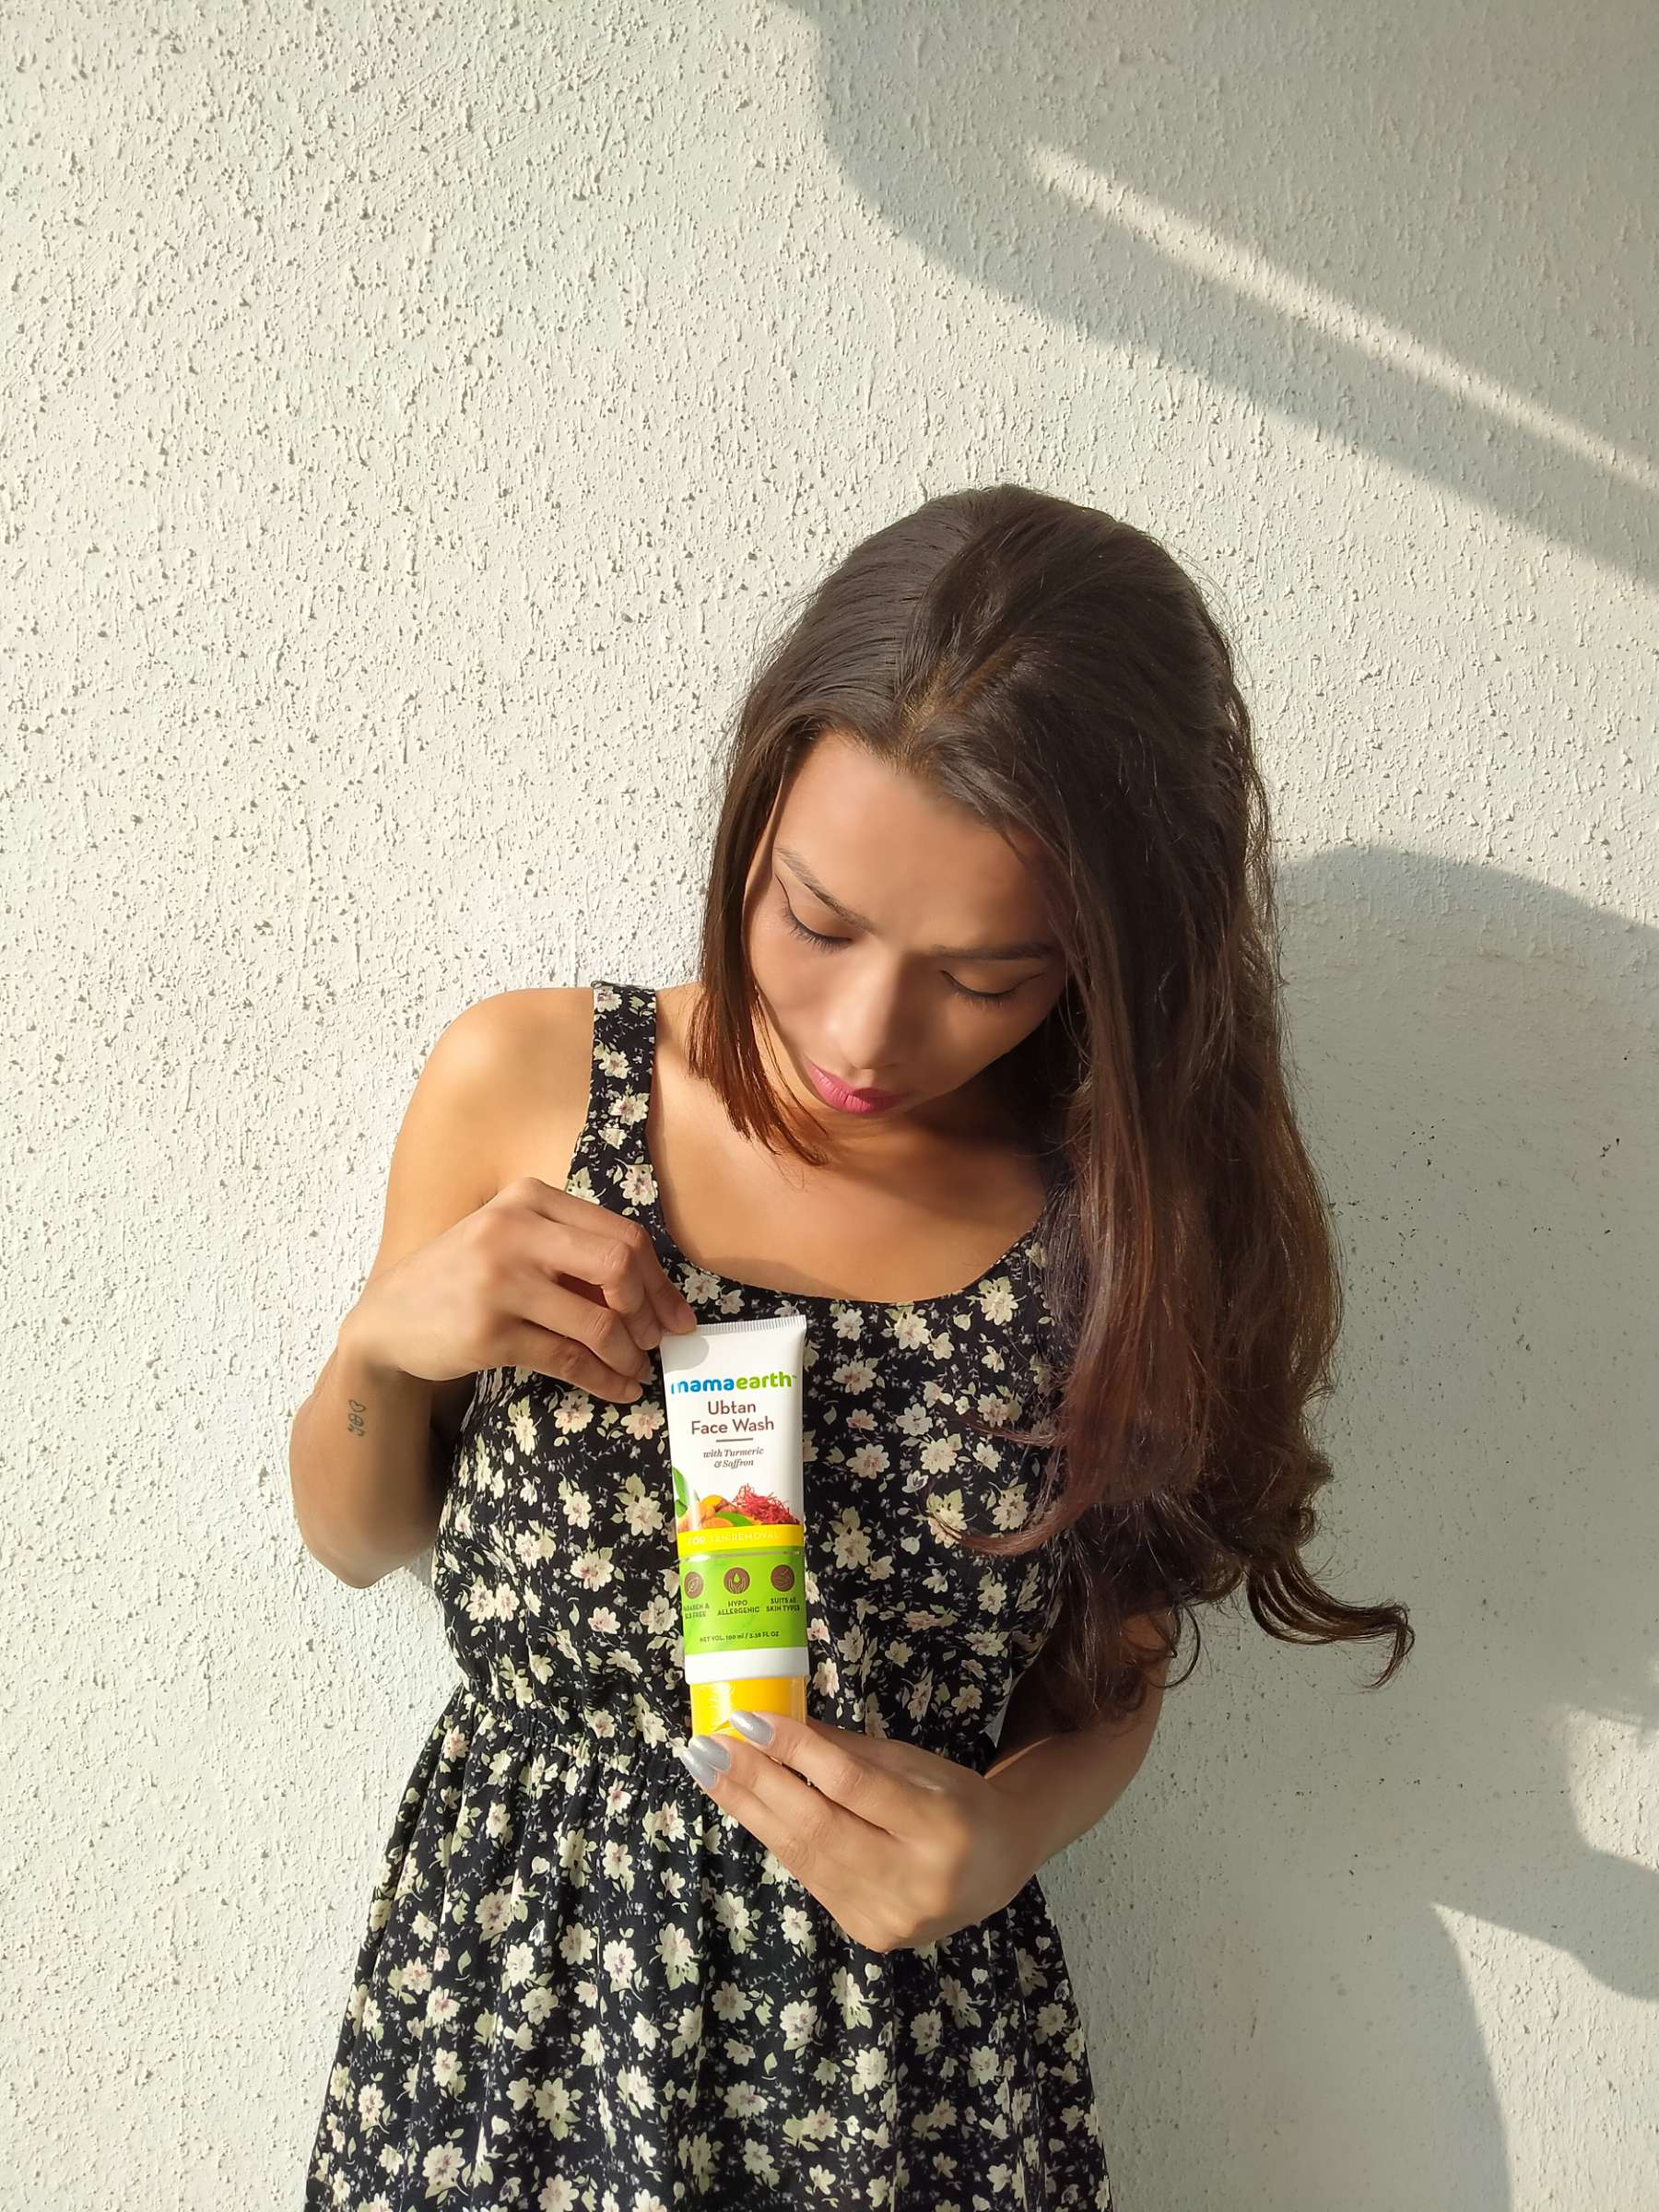 MamaEarth Ubtan Face Wash-One stop destination for tan removal.-By geetanjali_bharali-1